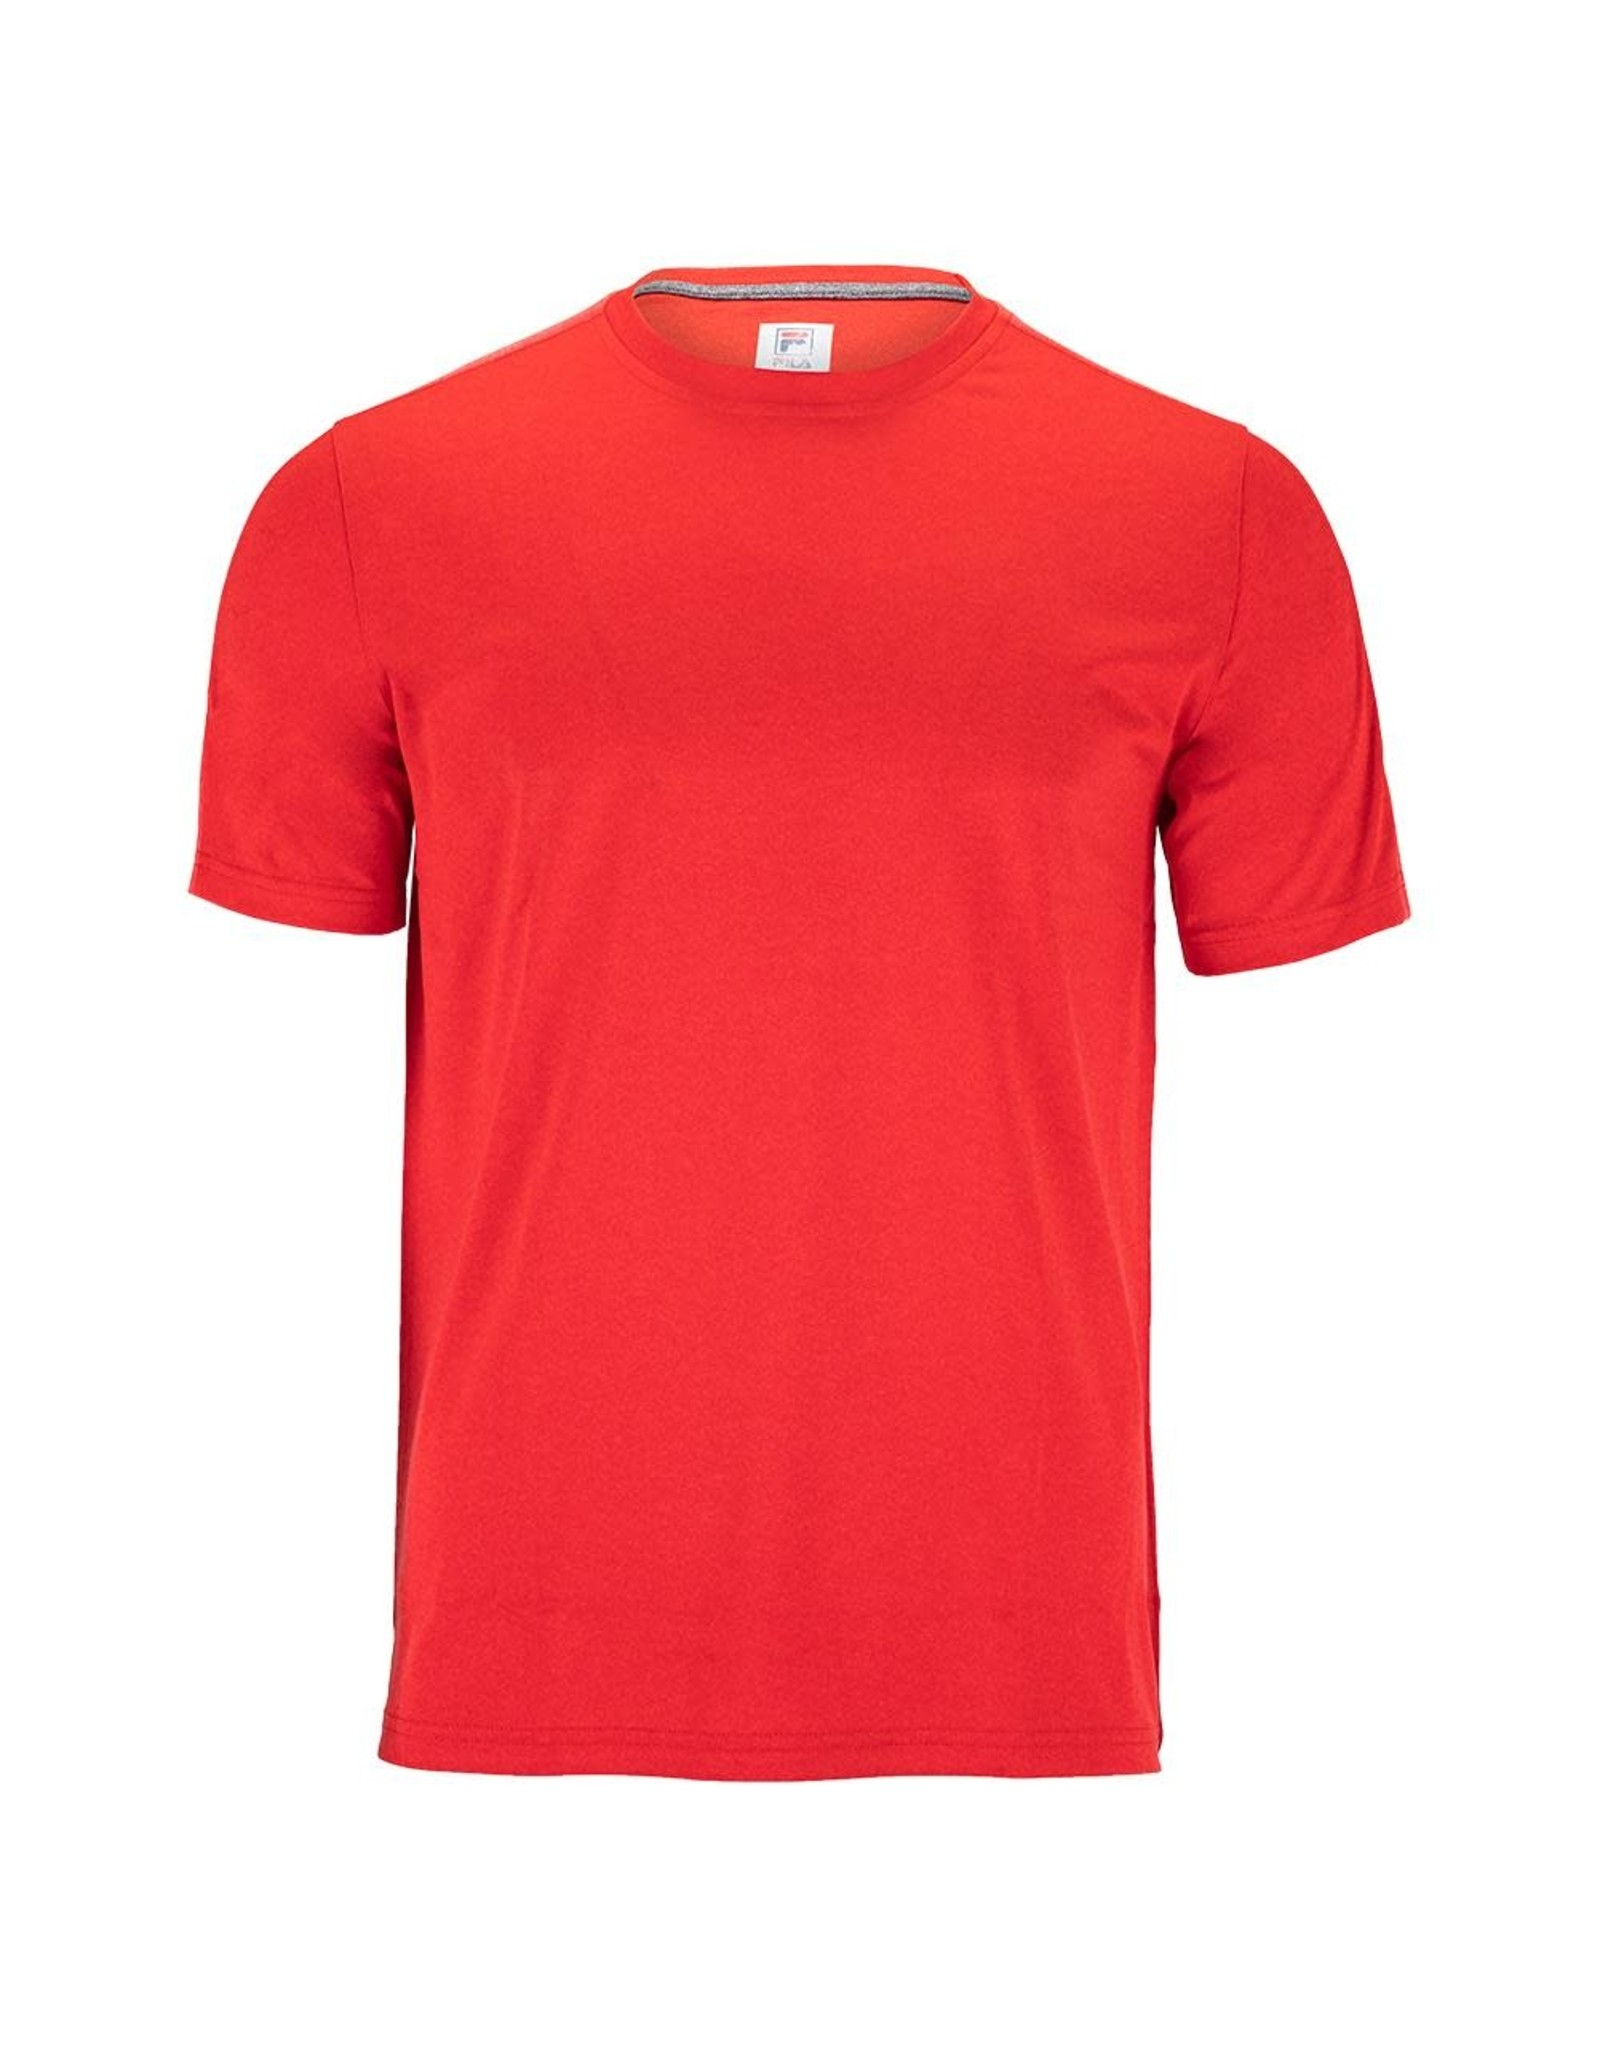 Fila Fila Essentials Heather Mesh Crew (Red)